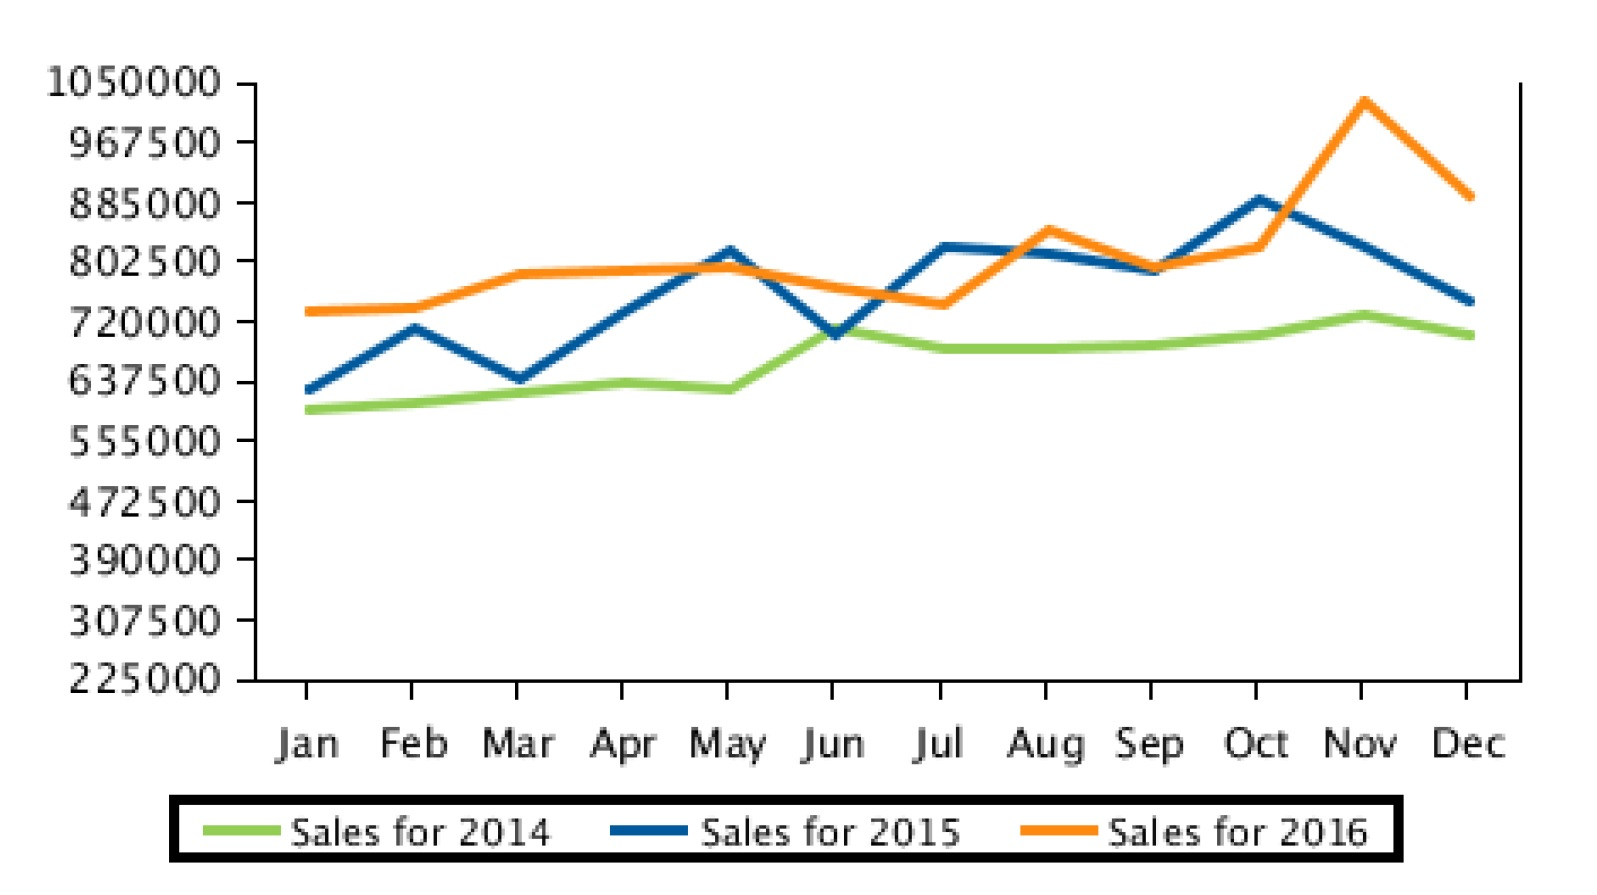 RP Property data graph showing Wantirna median property price change from 2014 to 2016.